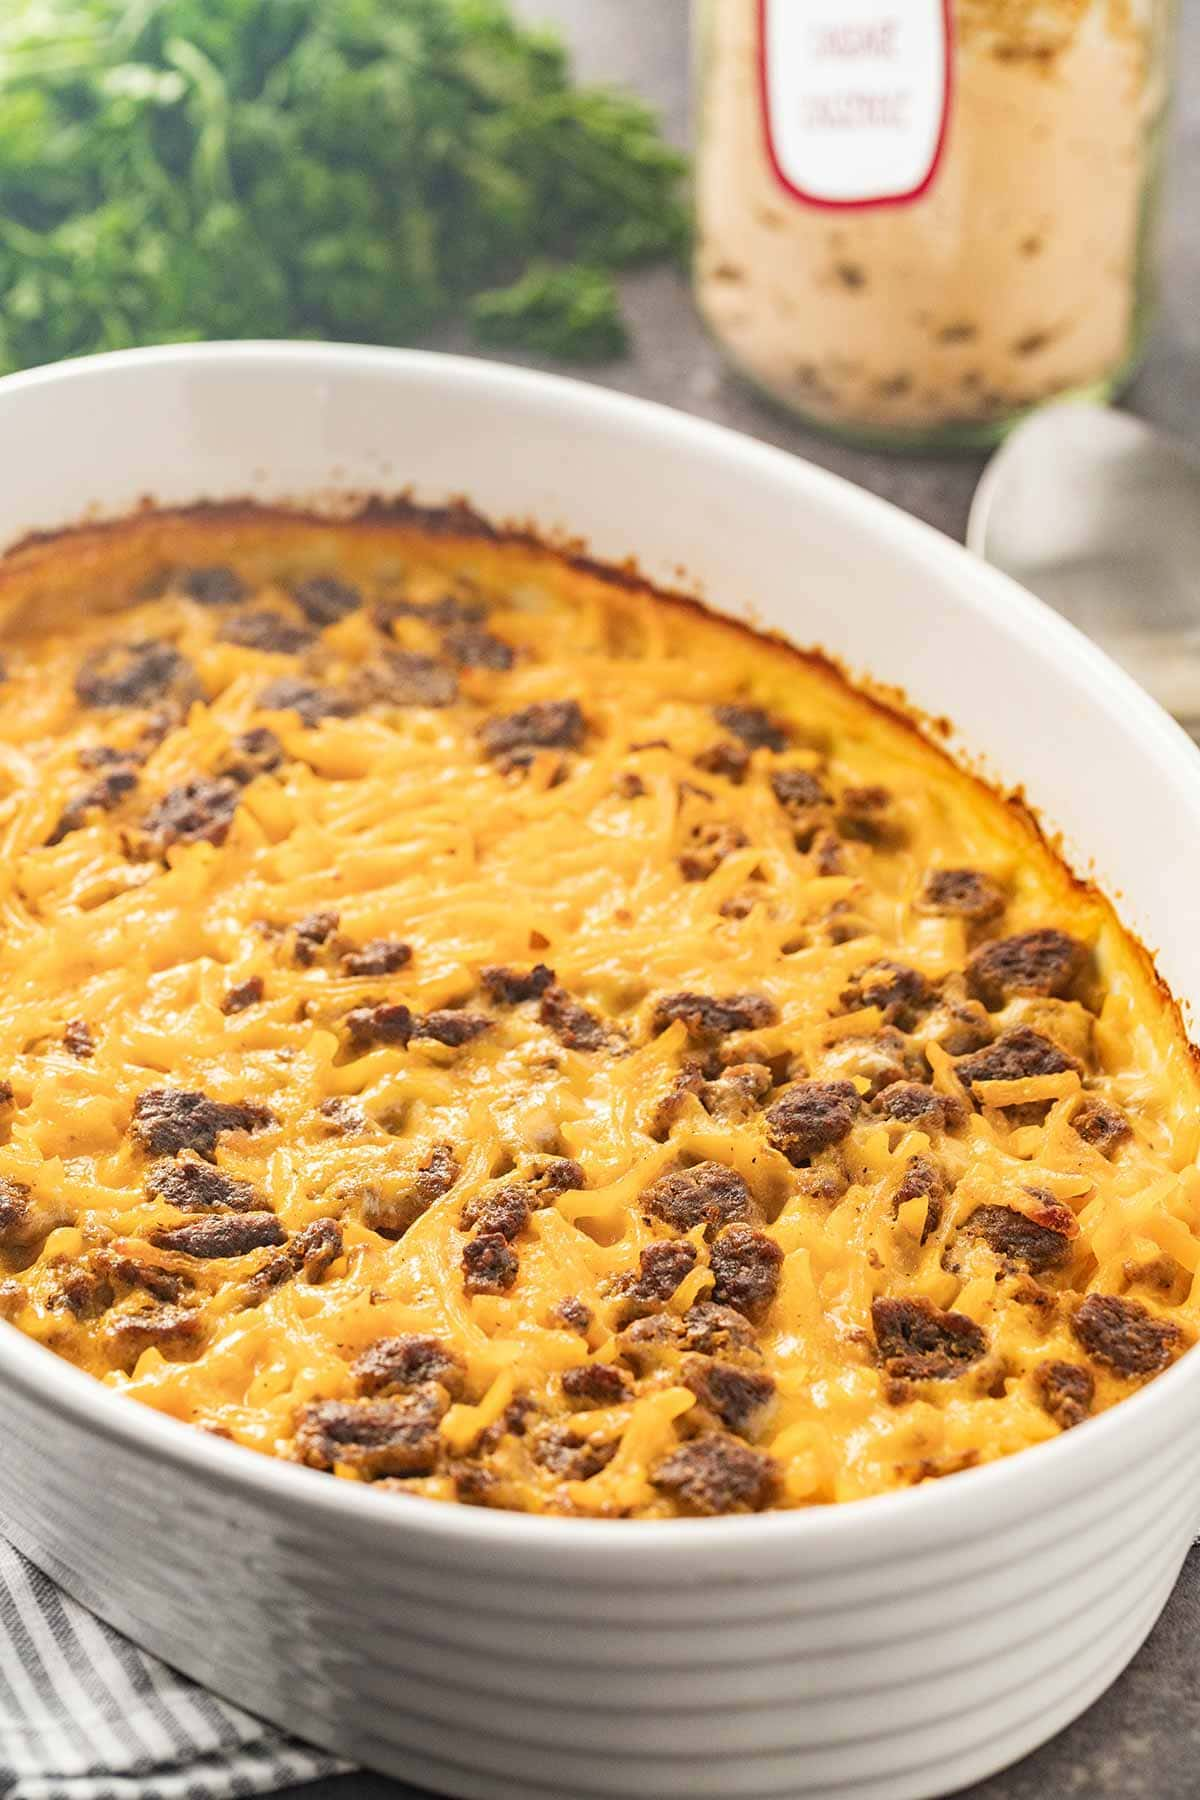 White oval dish showing baked Potato Cheese Sausage Casserole for an easy meal.